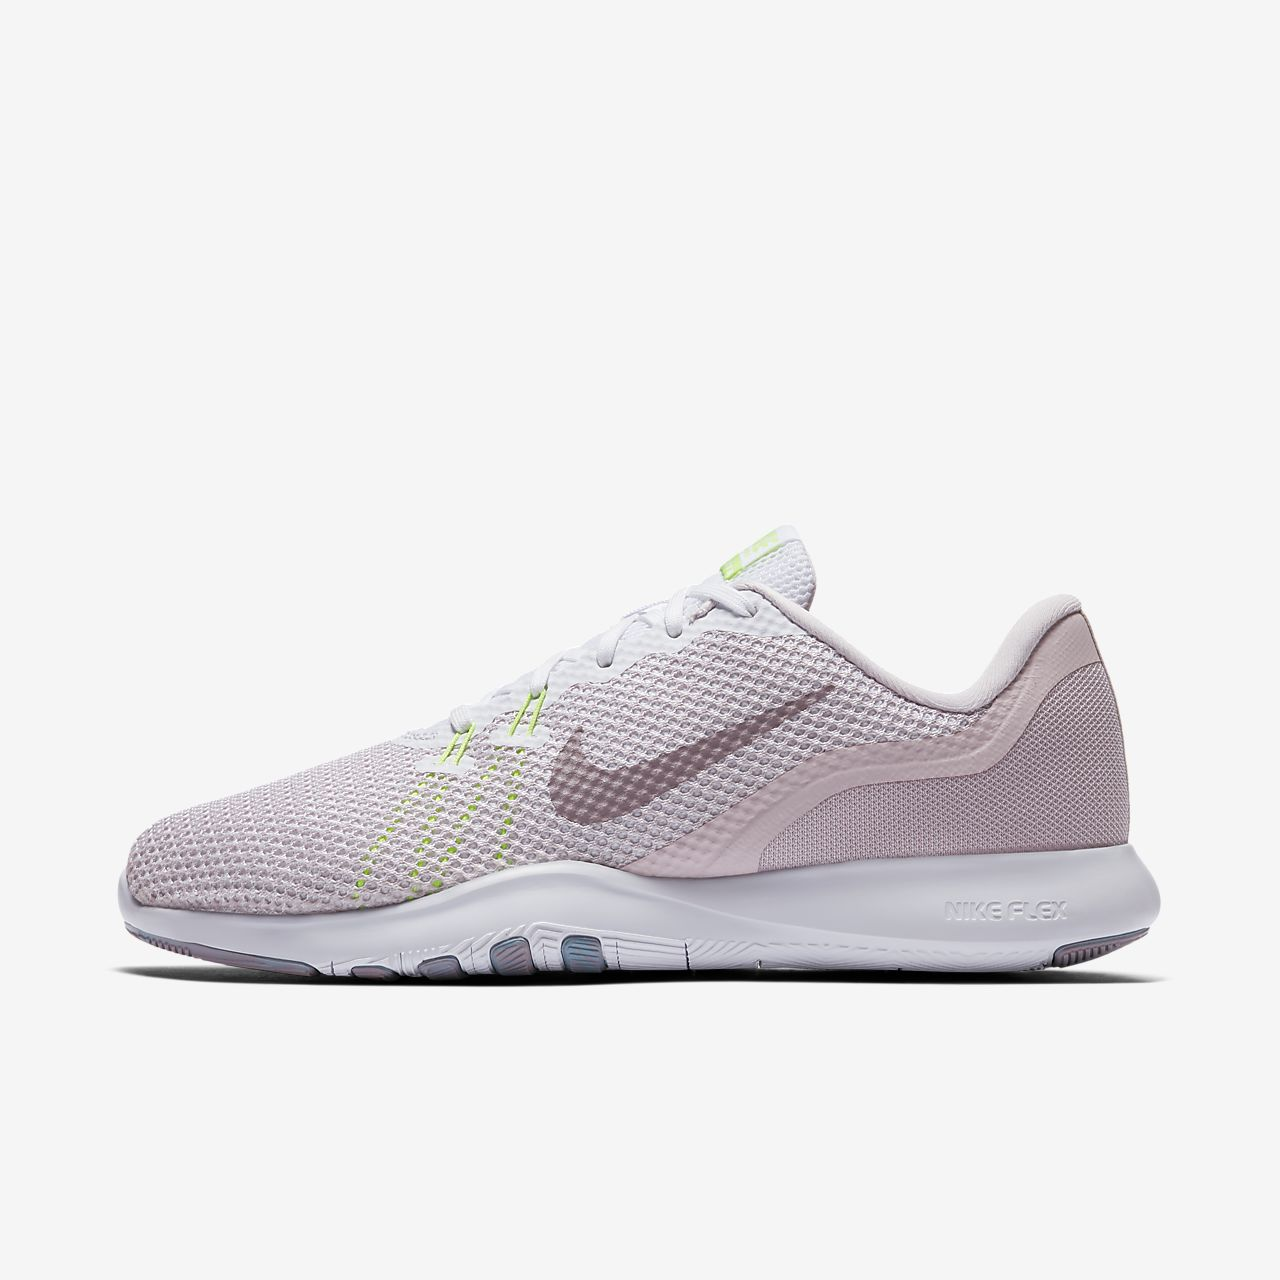 Rennes Factory Chaussure Chaussure Nike Factory Factory Rennes Chaussure Nike Nike Rennes USzMVp